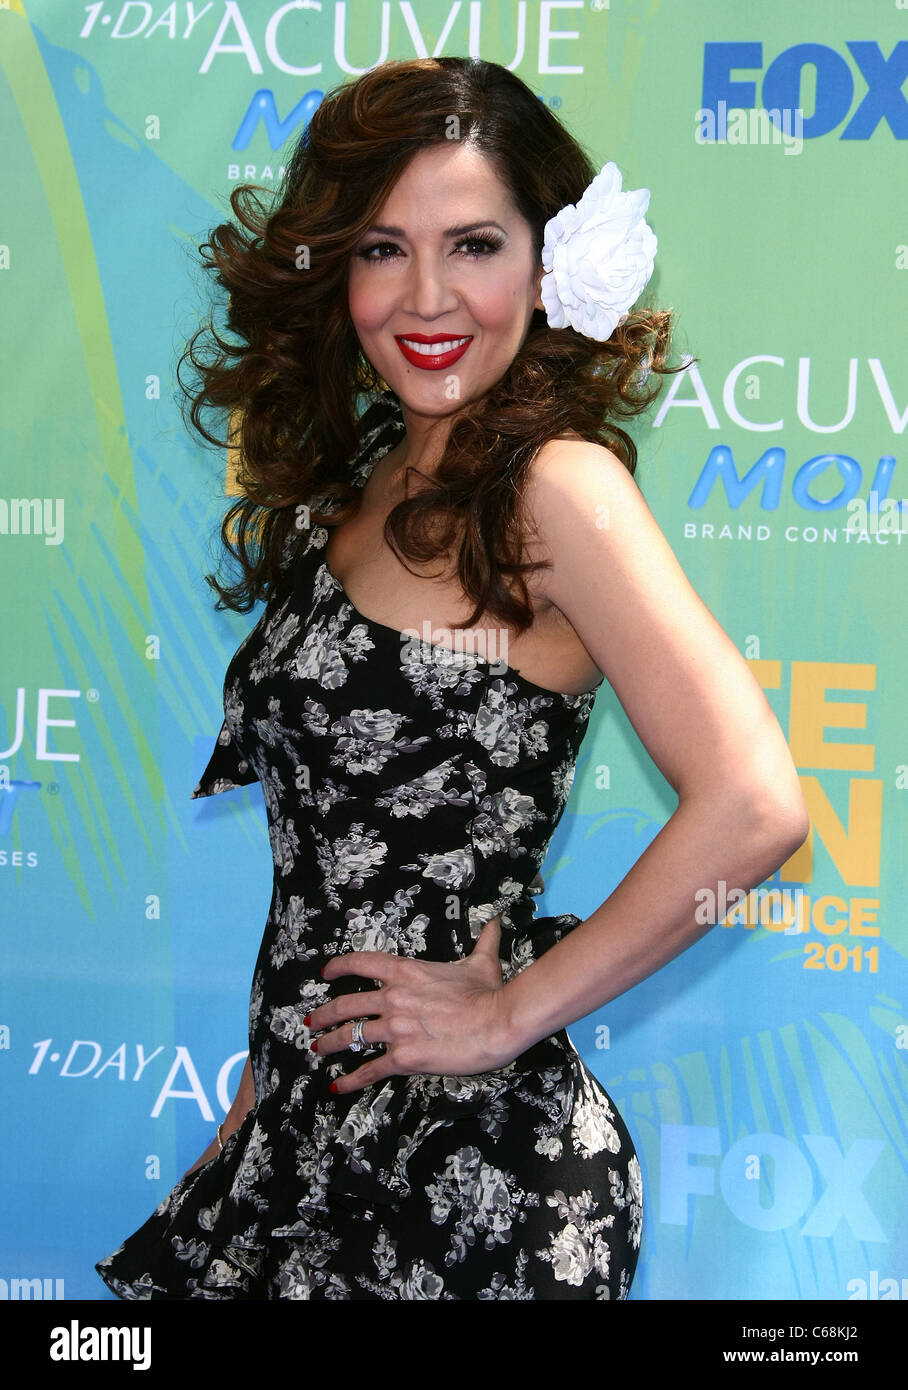 Can help Maria canals barrera hot apologise